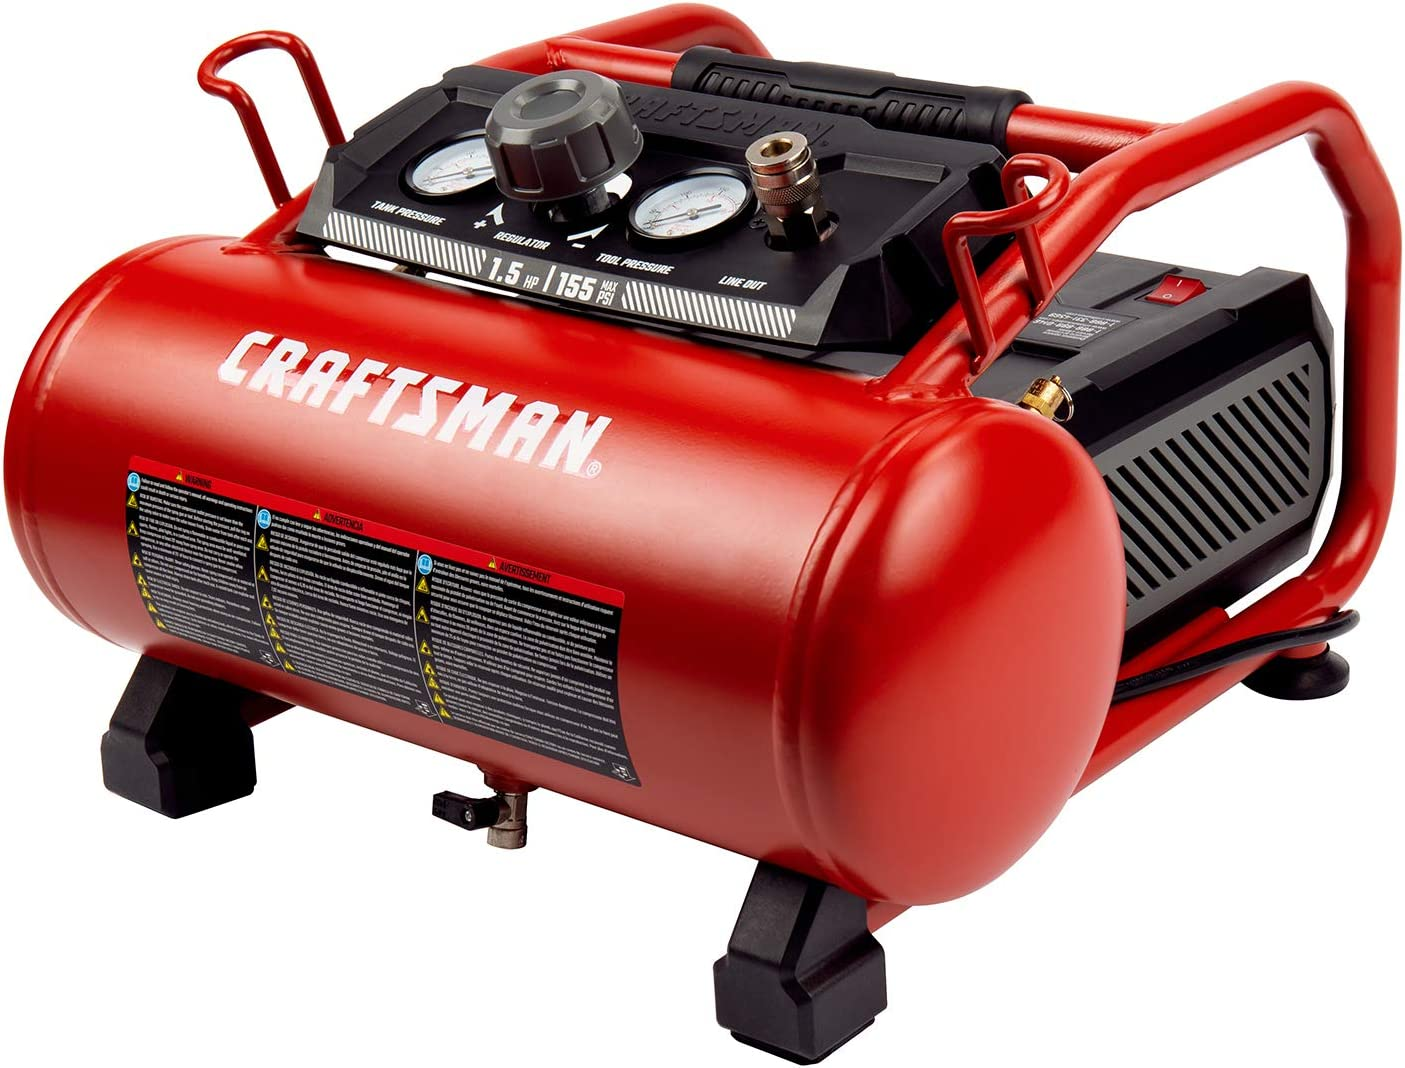 Craftsman Air Compressor, 3 Gallon 1.5 HP Max 155 Psi Pressure Oil-Free Portable, Red- CMXECXA0200341